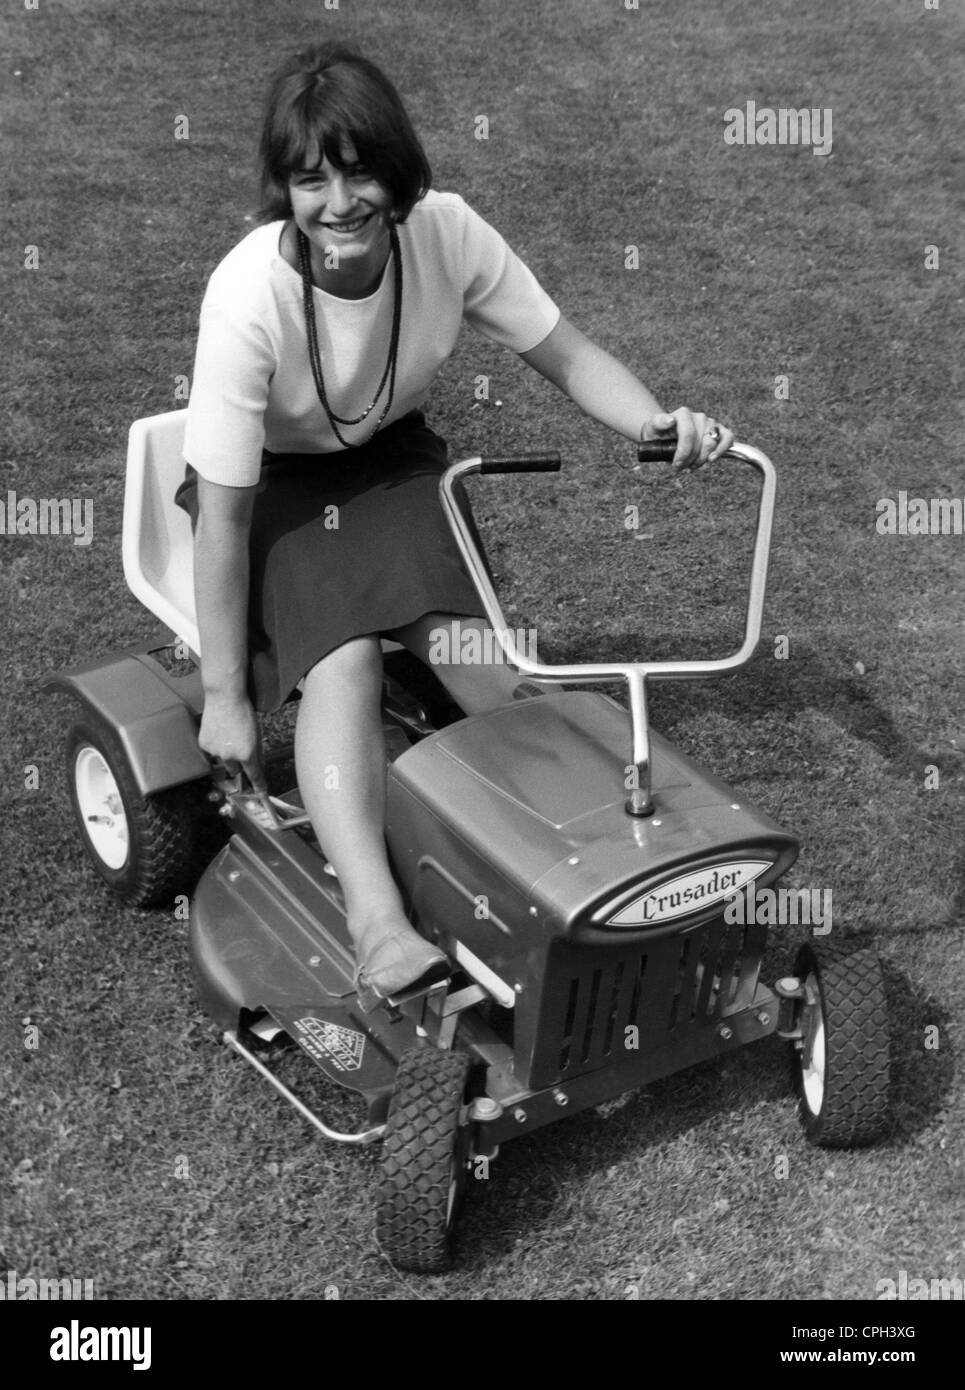 leisure time, gardening, woman on a 'Crusader' lawn mower, 1965, Additional-Rights-Clearences-NA - Stock Image